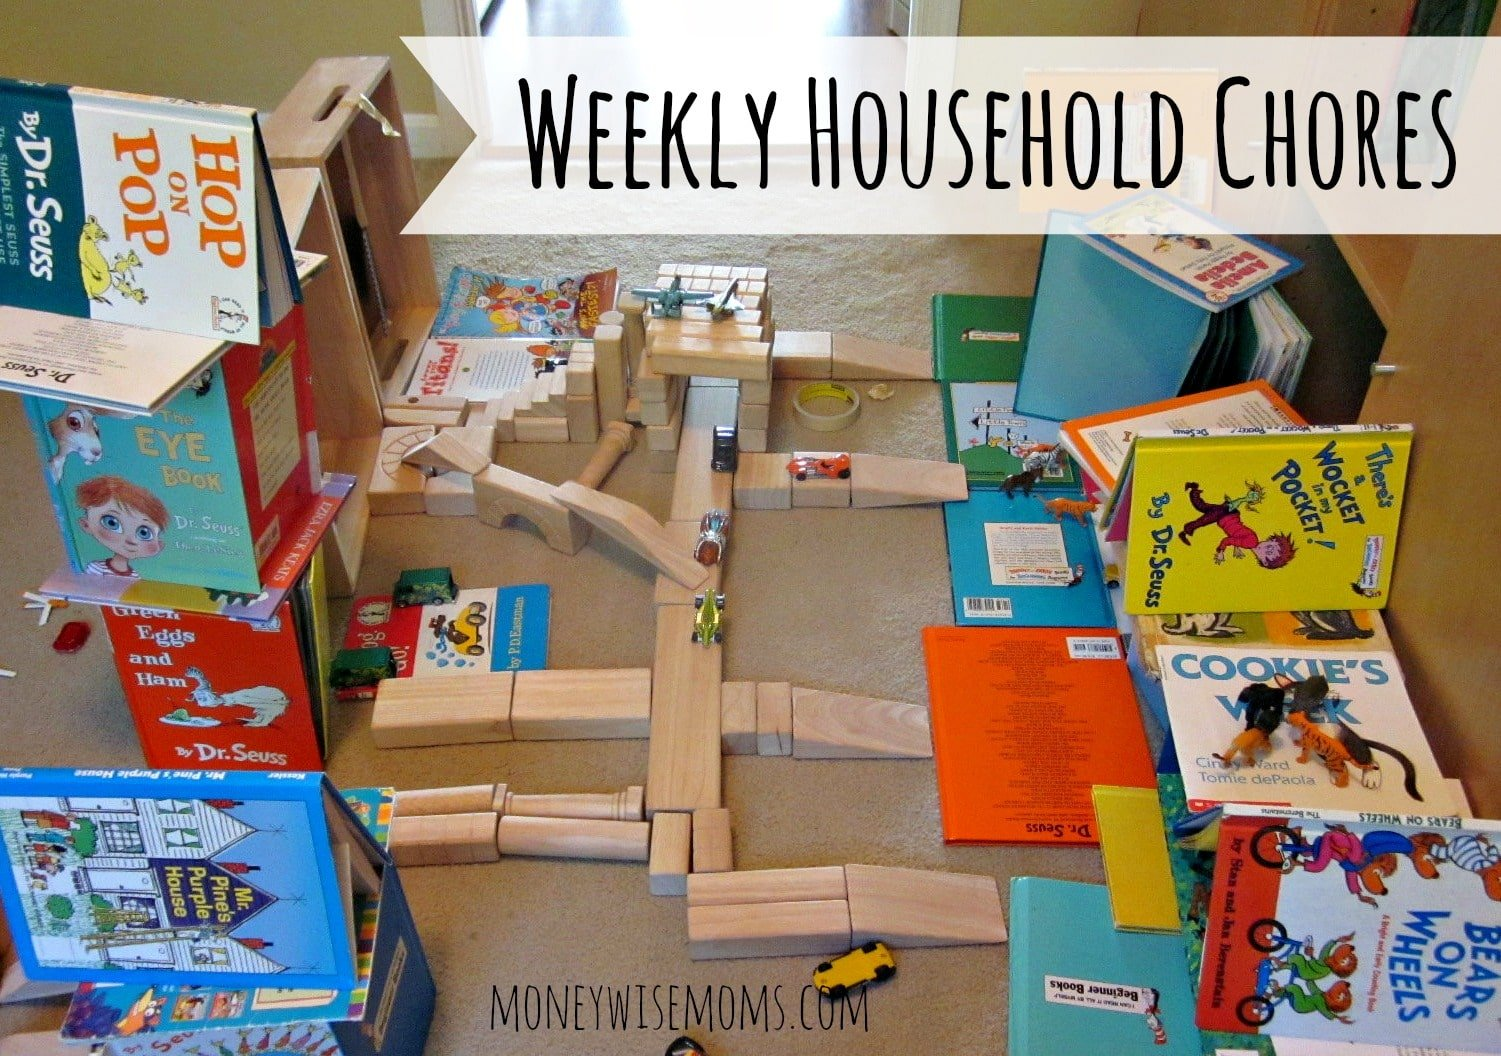 Weekly Household Chores